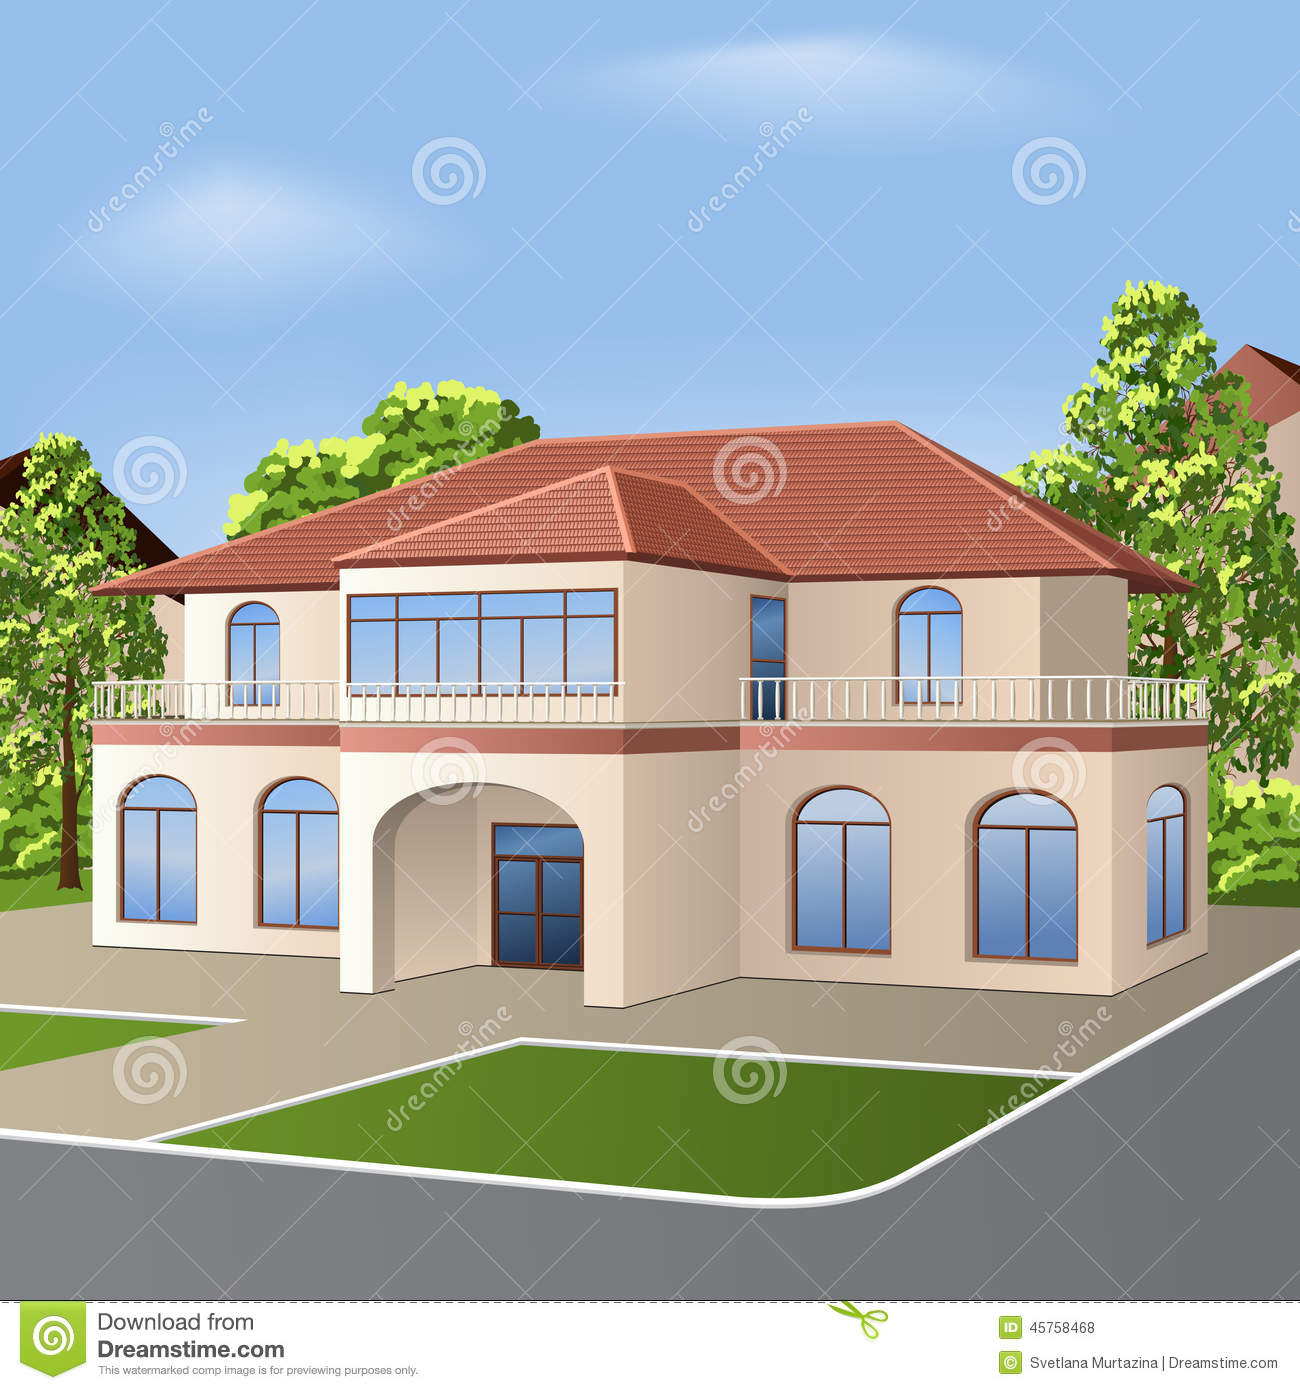 House with a tiled roof windows and entrance stock vector image 45758468 - Houses roof windows ...